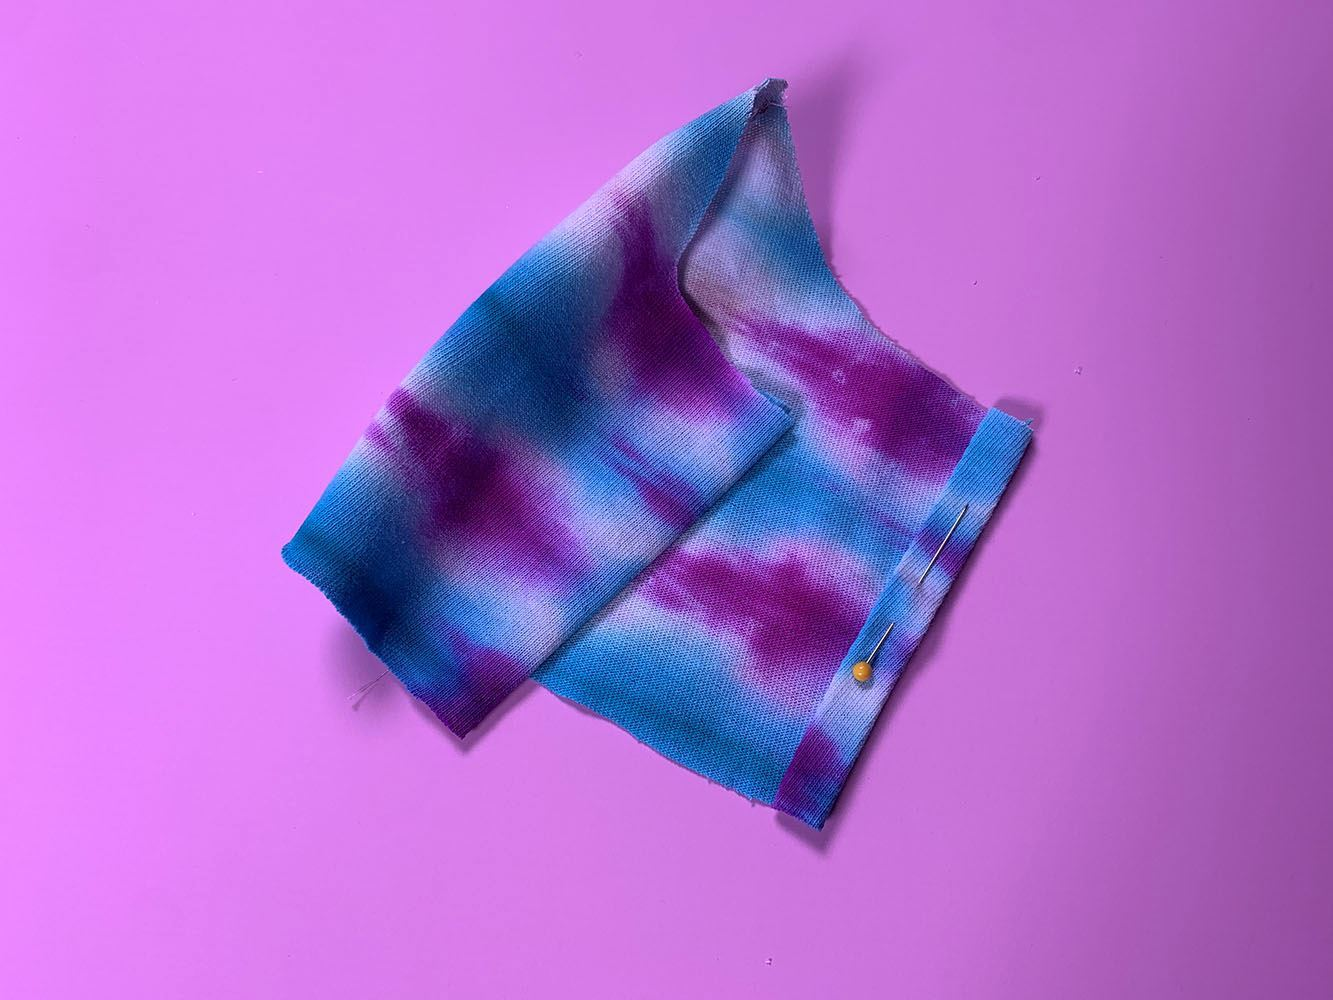 Tulip Tie-Dye Face Mask Tutorial - fold and stitch sides